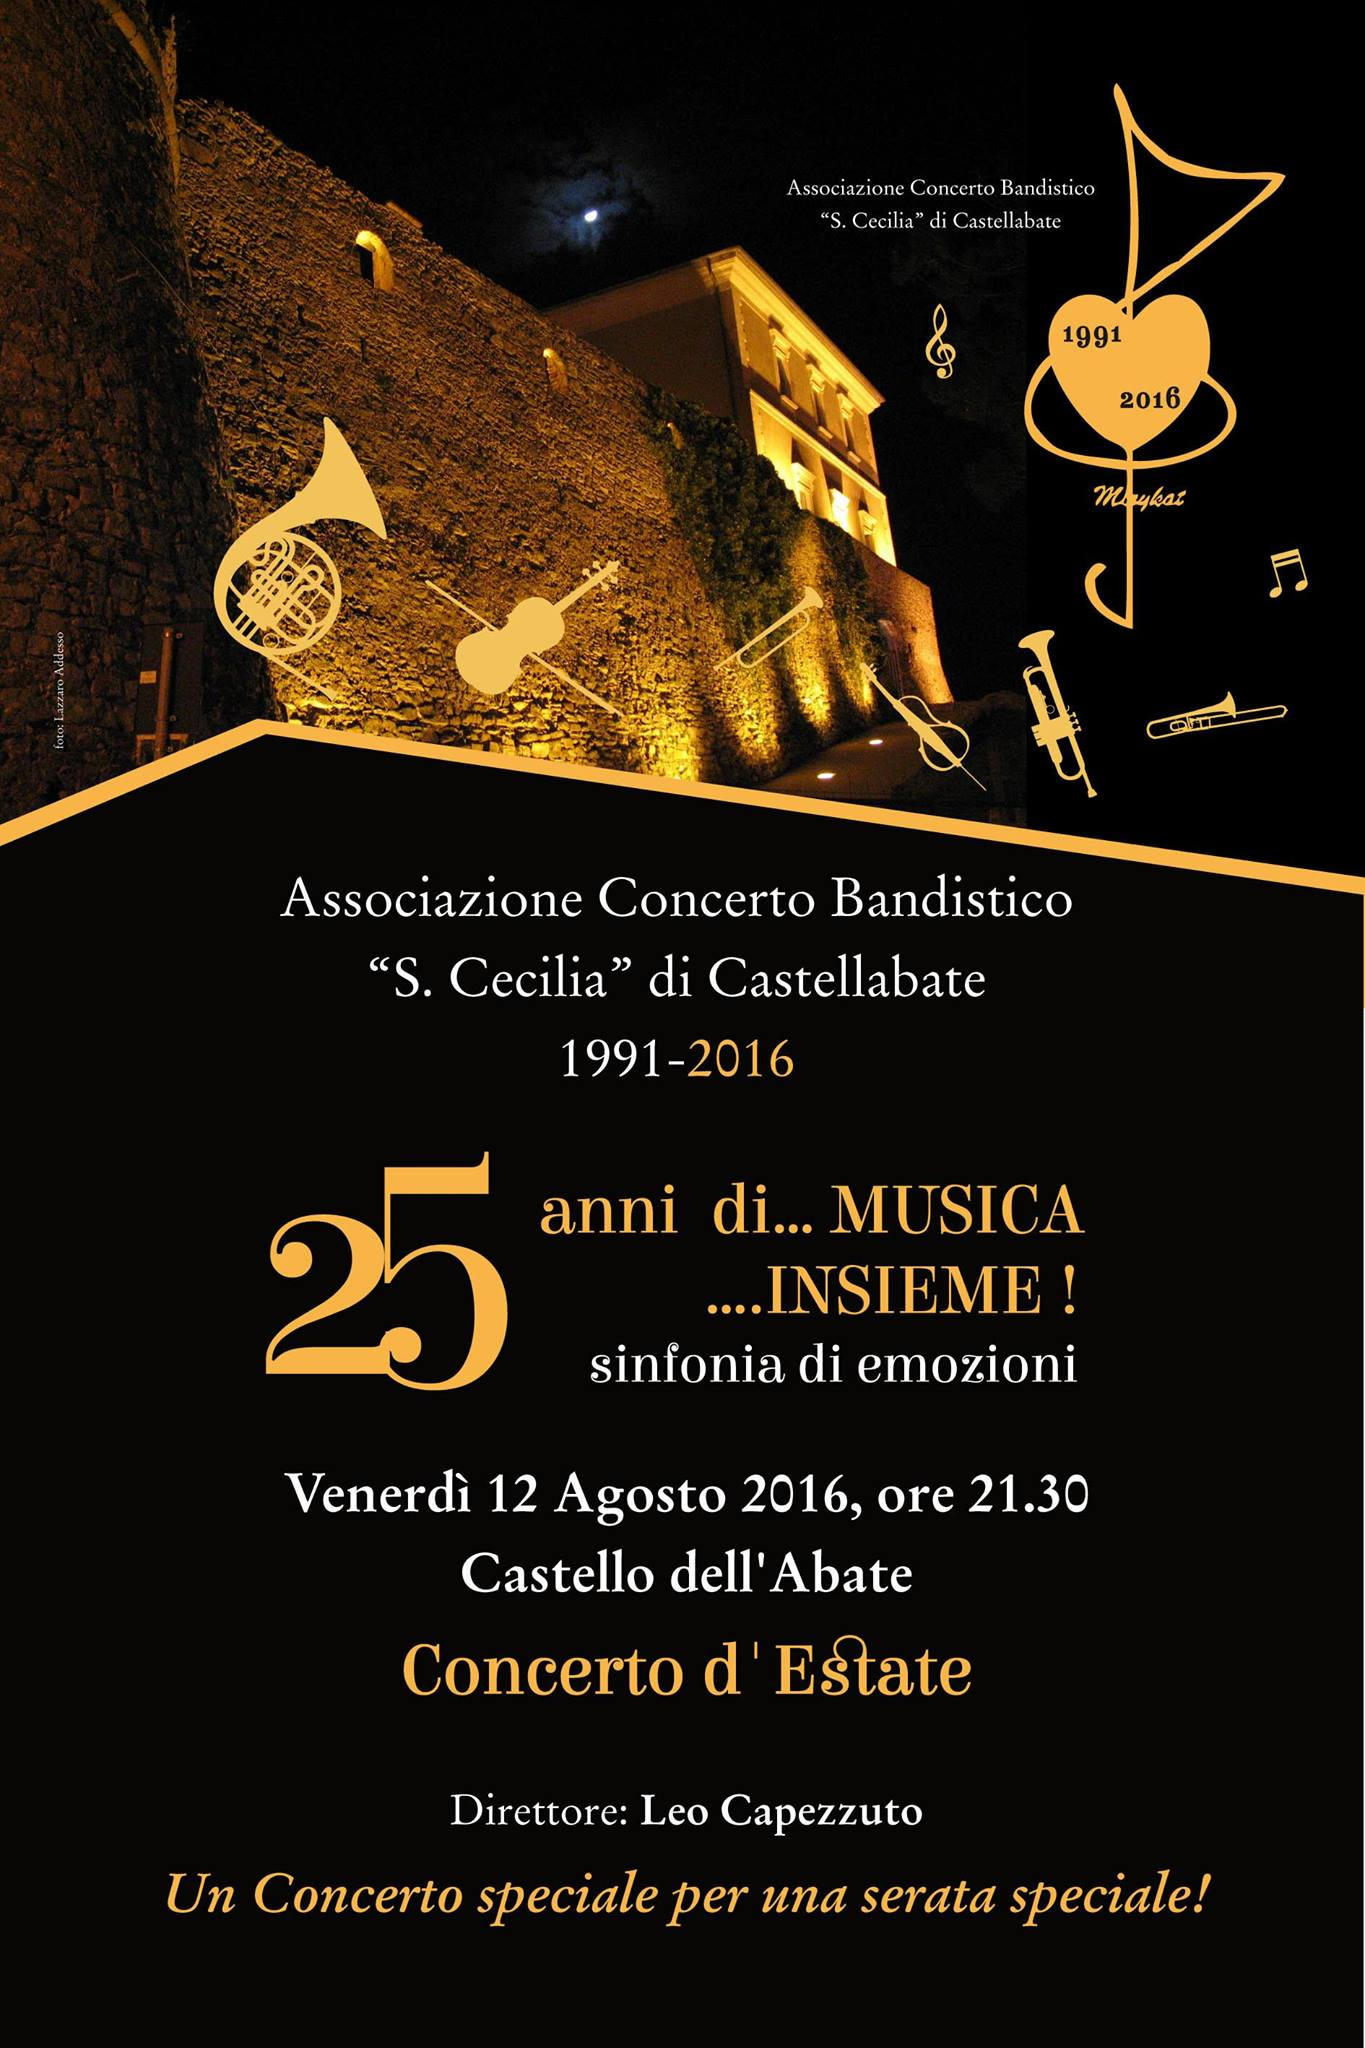 concerto d'estate santa cecilia castellabate